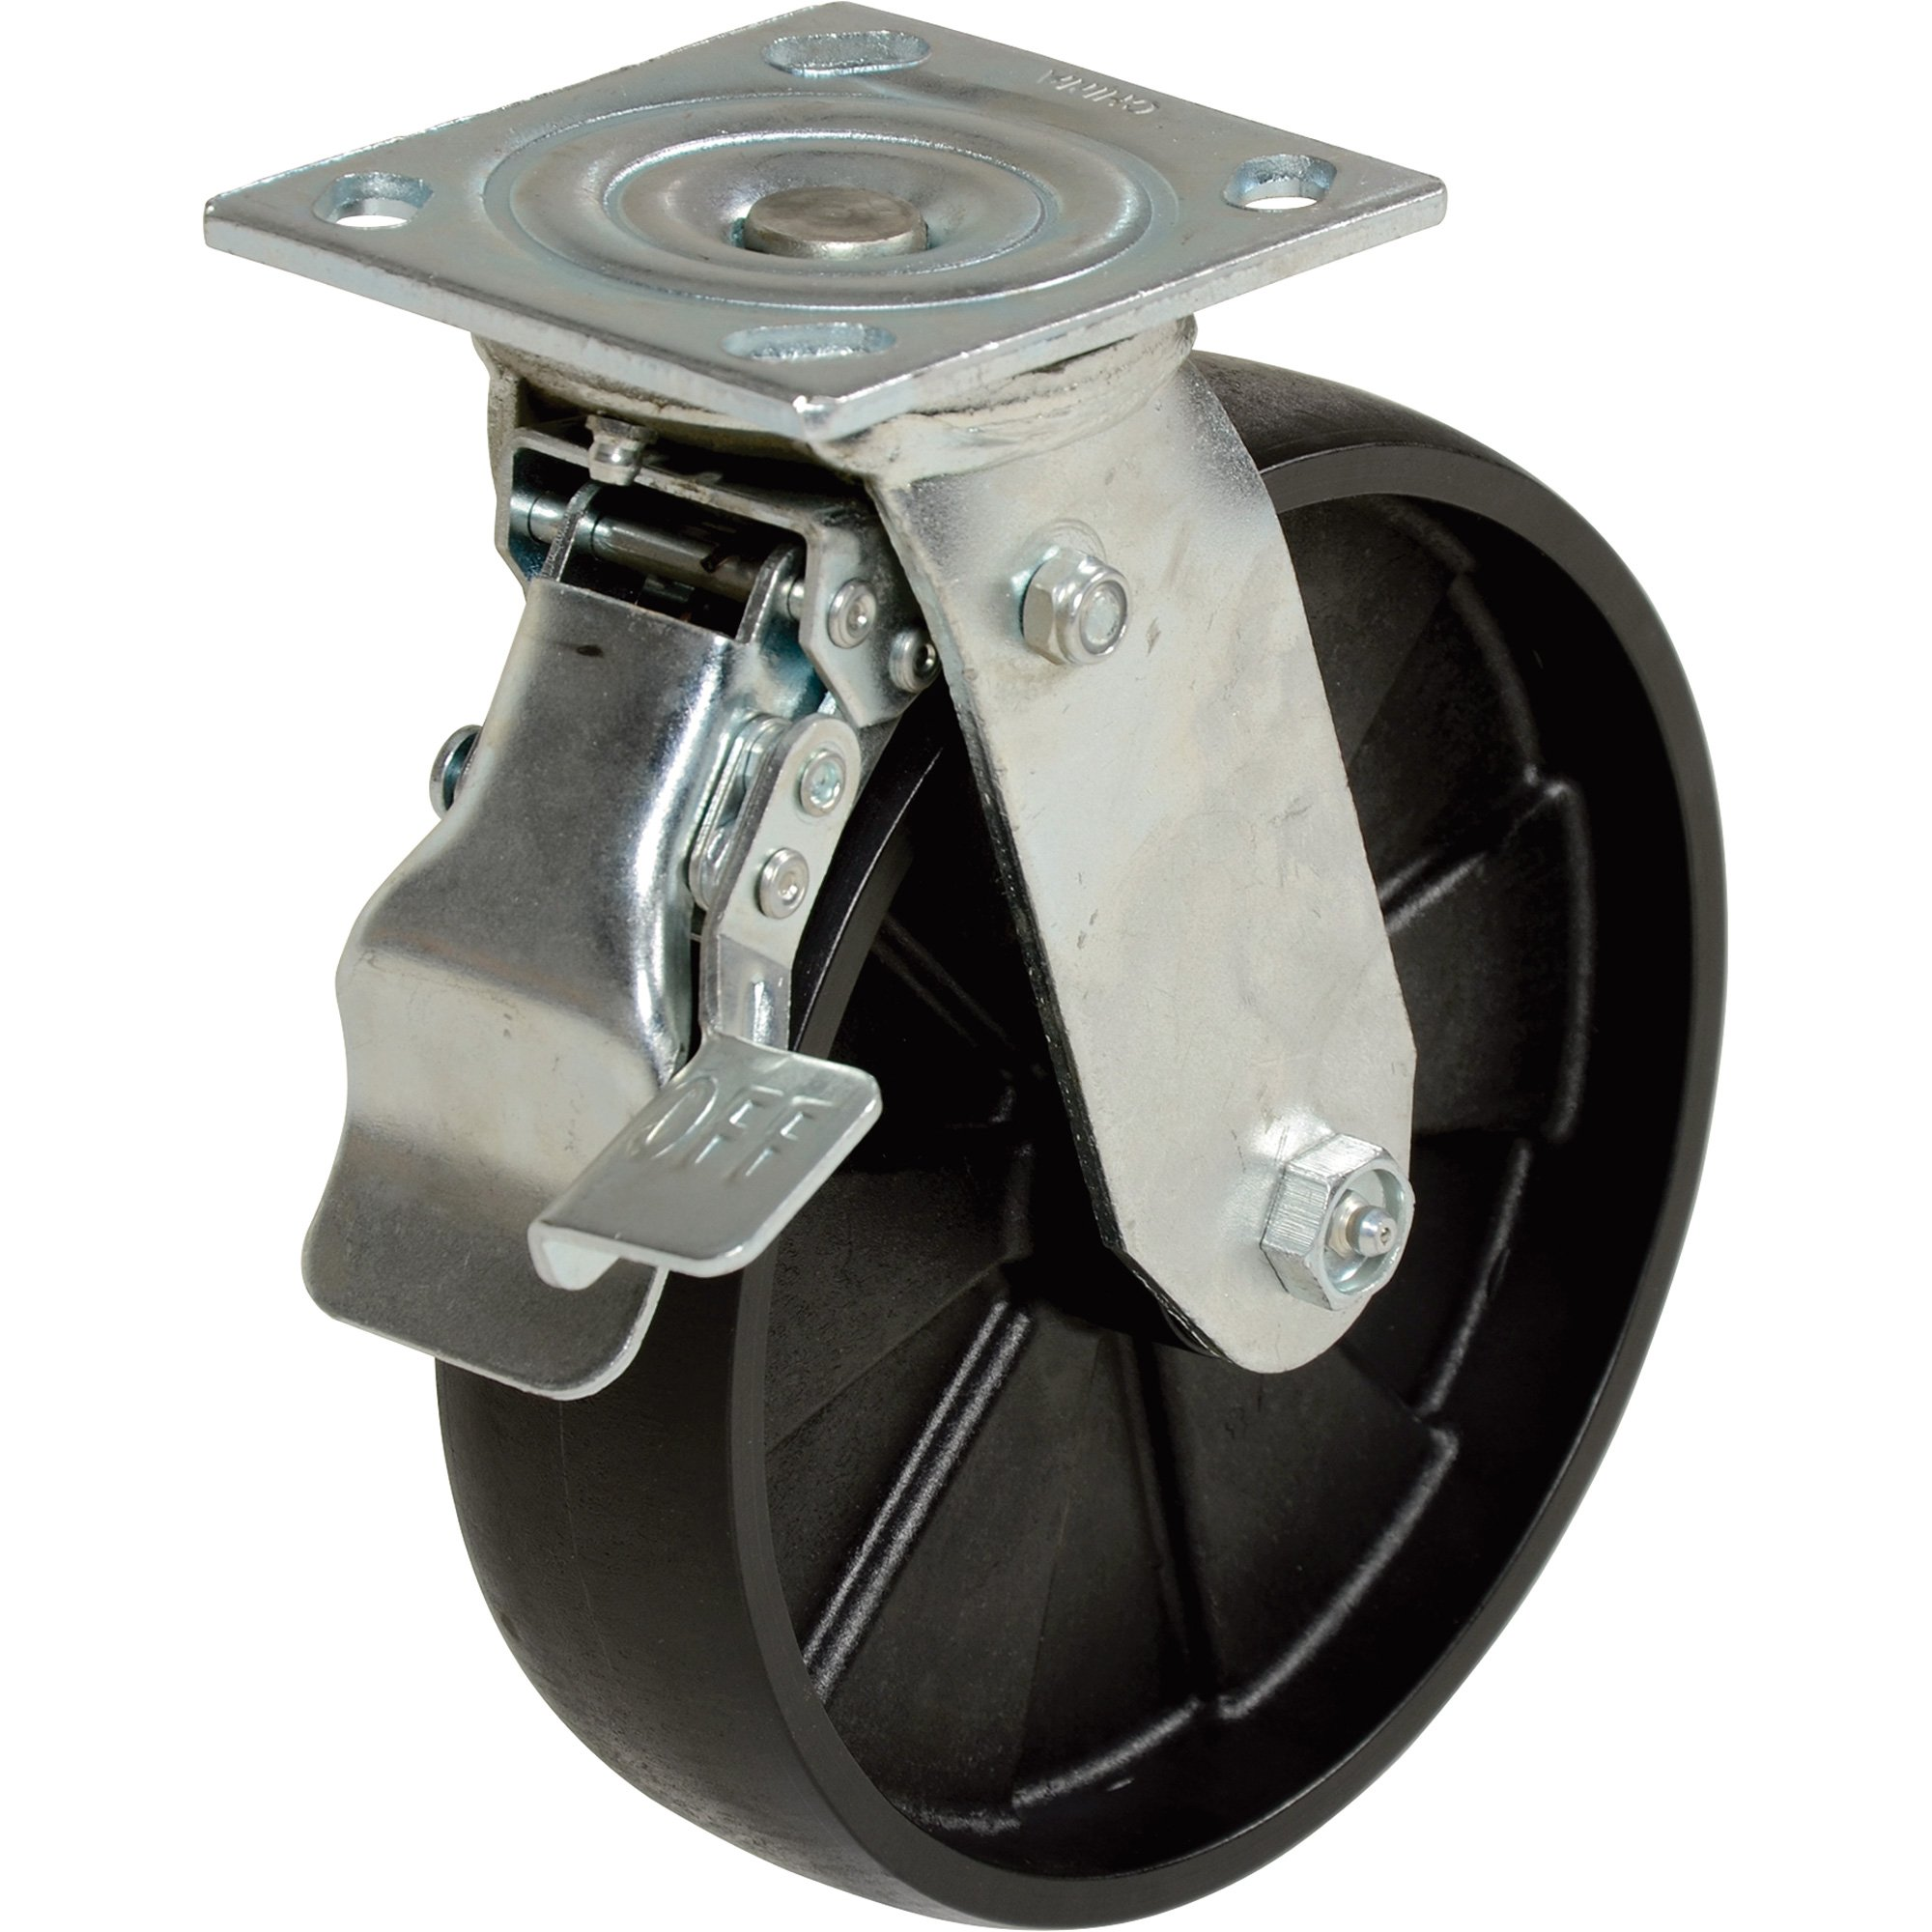 IHS AHS-6/8-TLC Total Locking Caster for 6000 and 8000 lbs Capacity Steel Gantry Crane